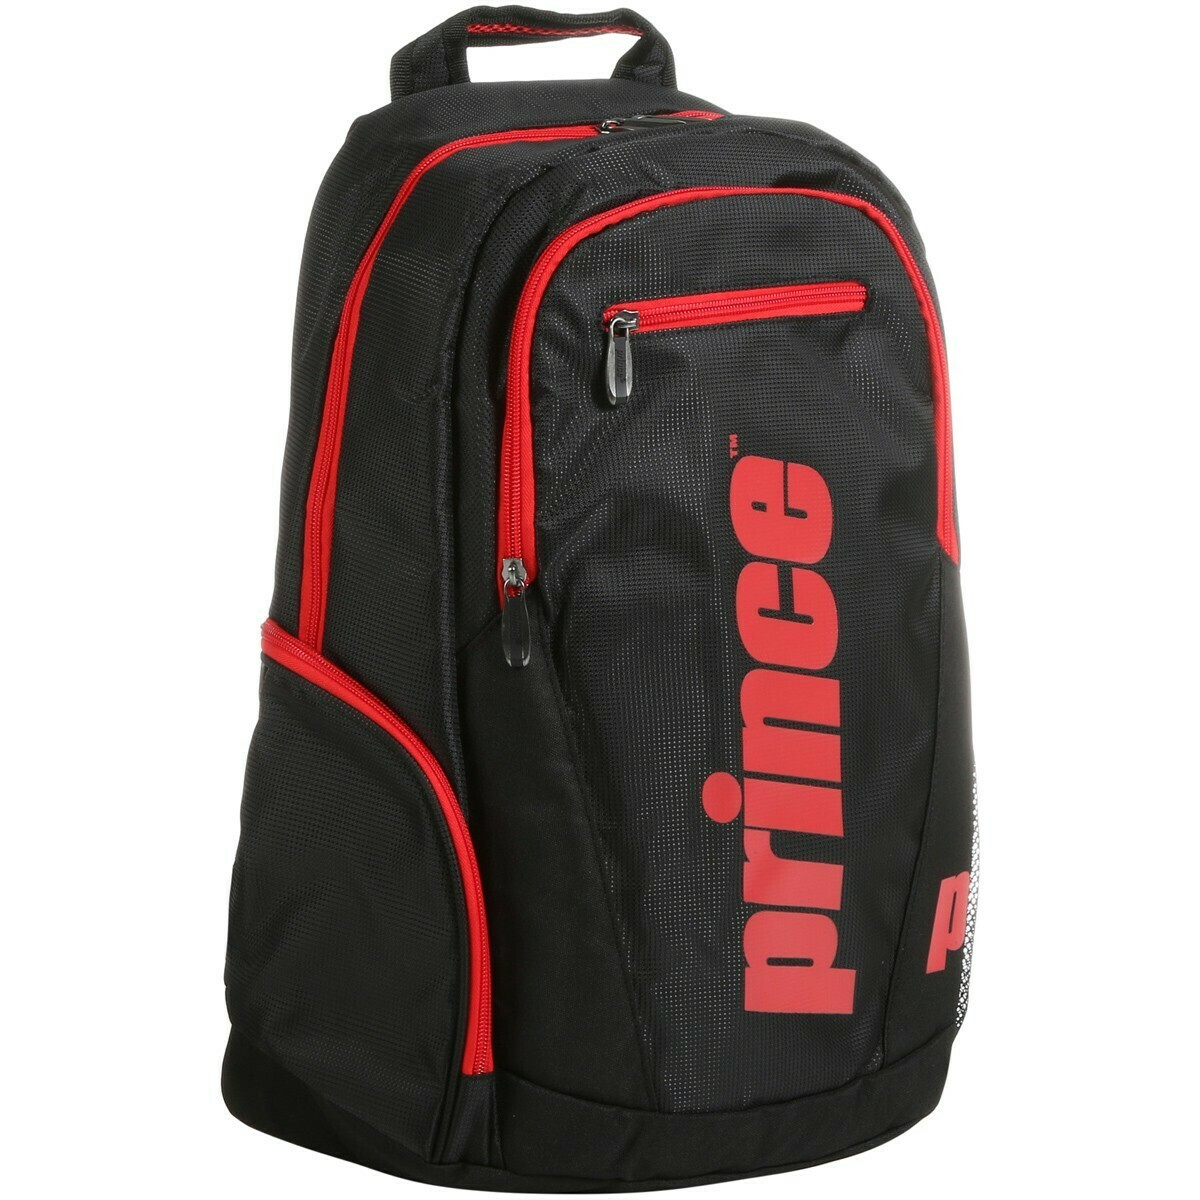 Prince Backpack - Black/Red